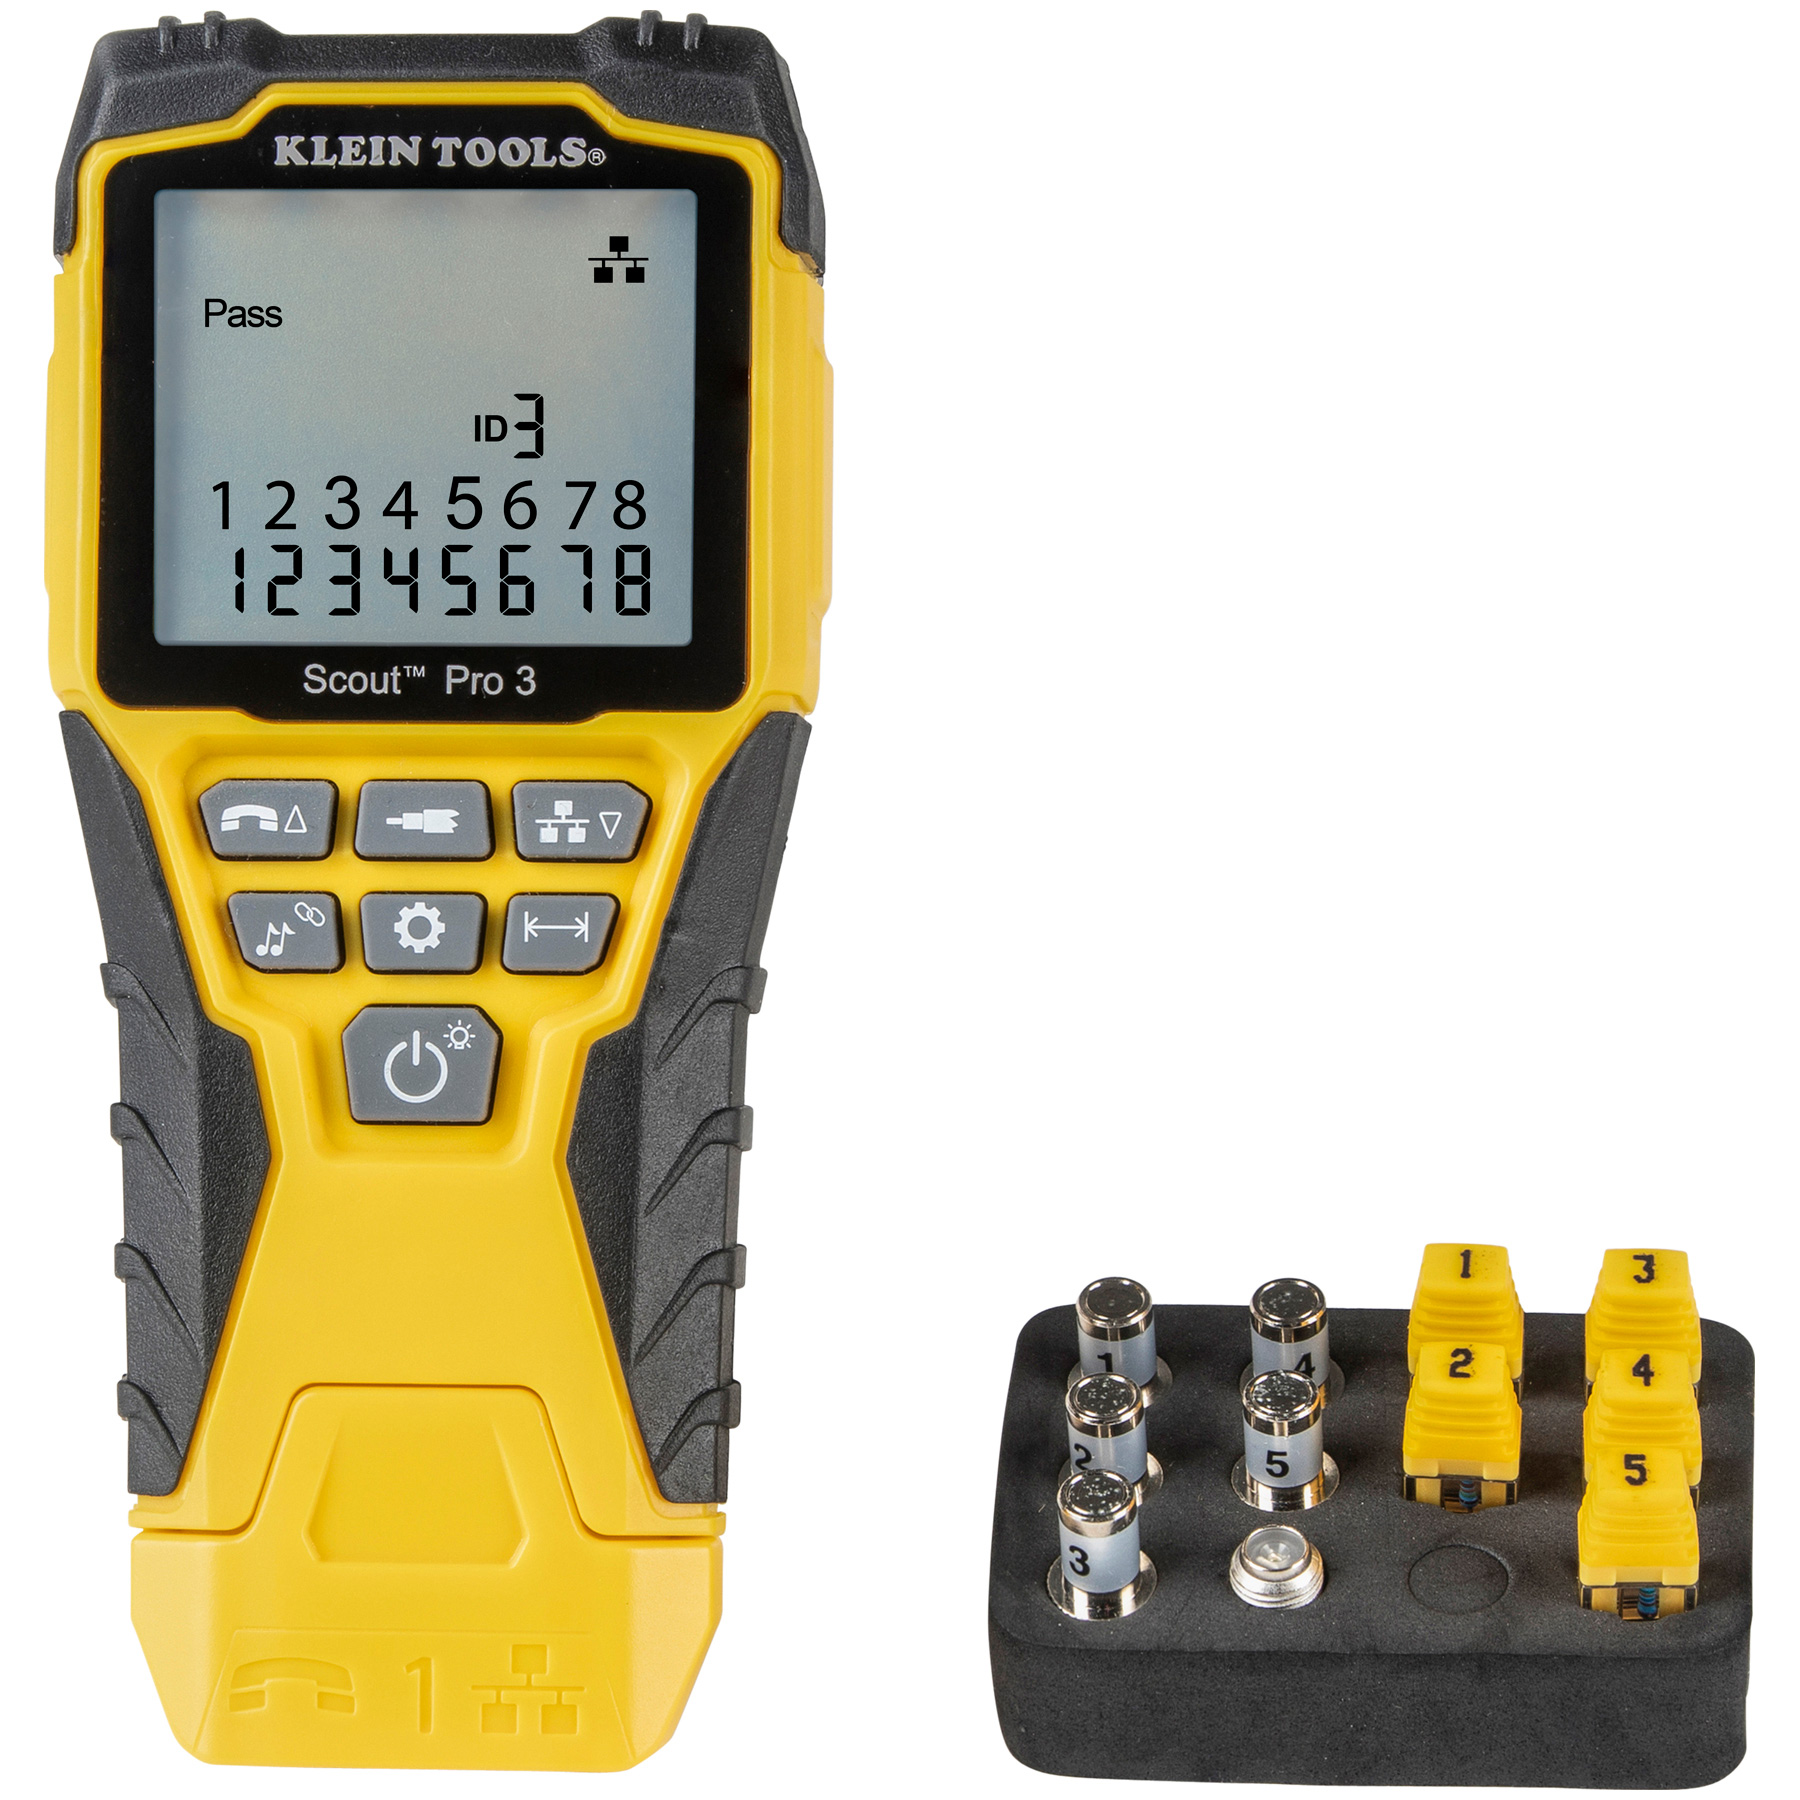 Klein Tools VDV501-851 Cable Tester Kit with Scout® Pro 3 Tester - Remotes - Adapter - Battery KLT-VDV501-851